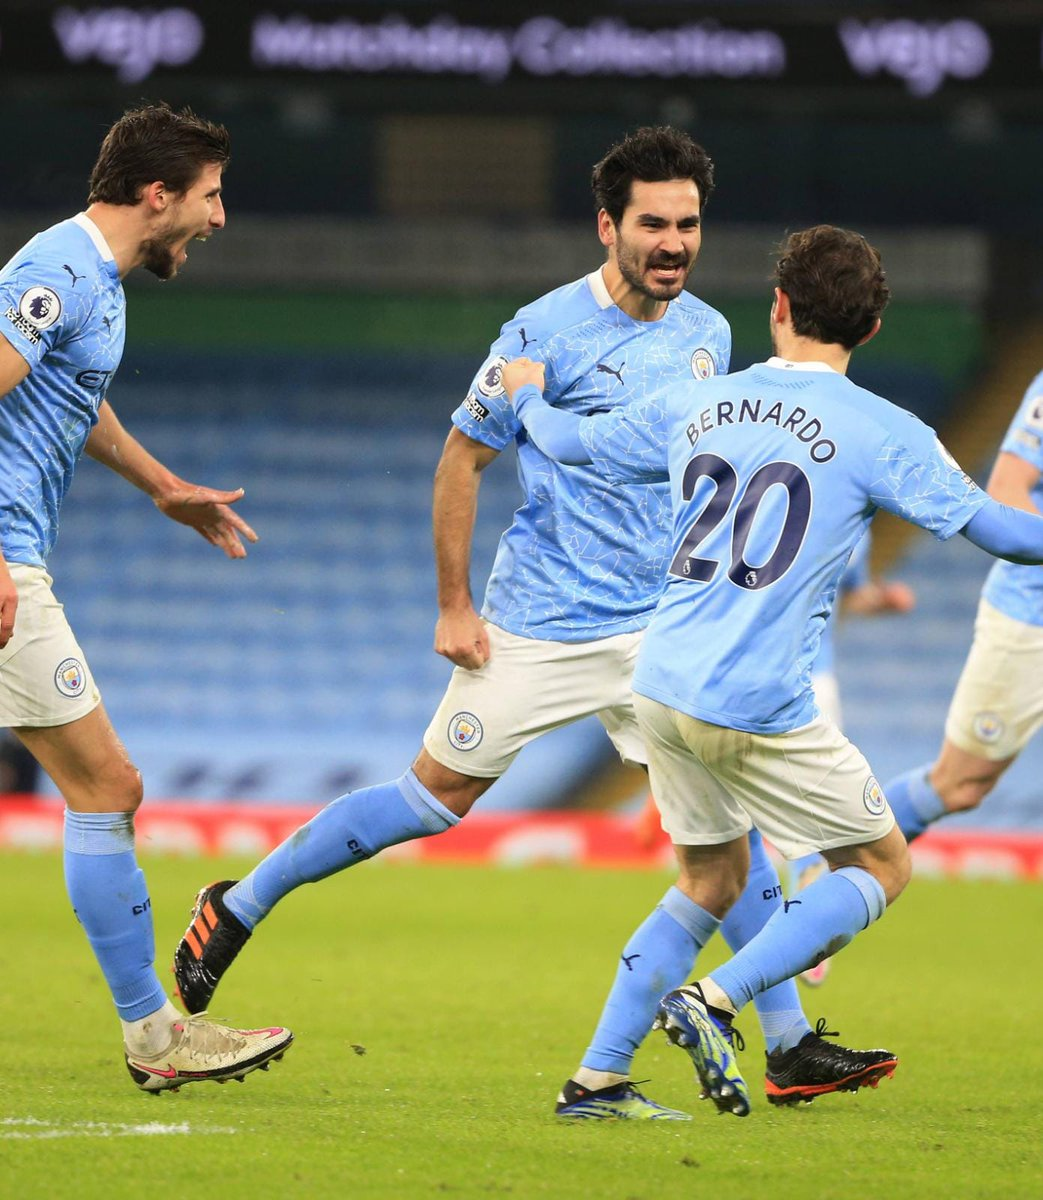 Replying to @IlkayGuendogan: This is the @ManCity we know! 💙🎱🔥💥